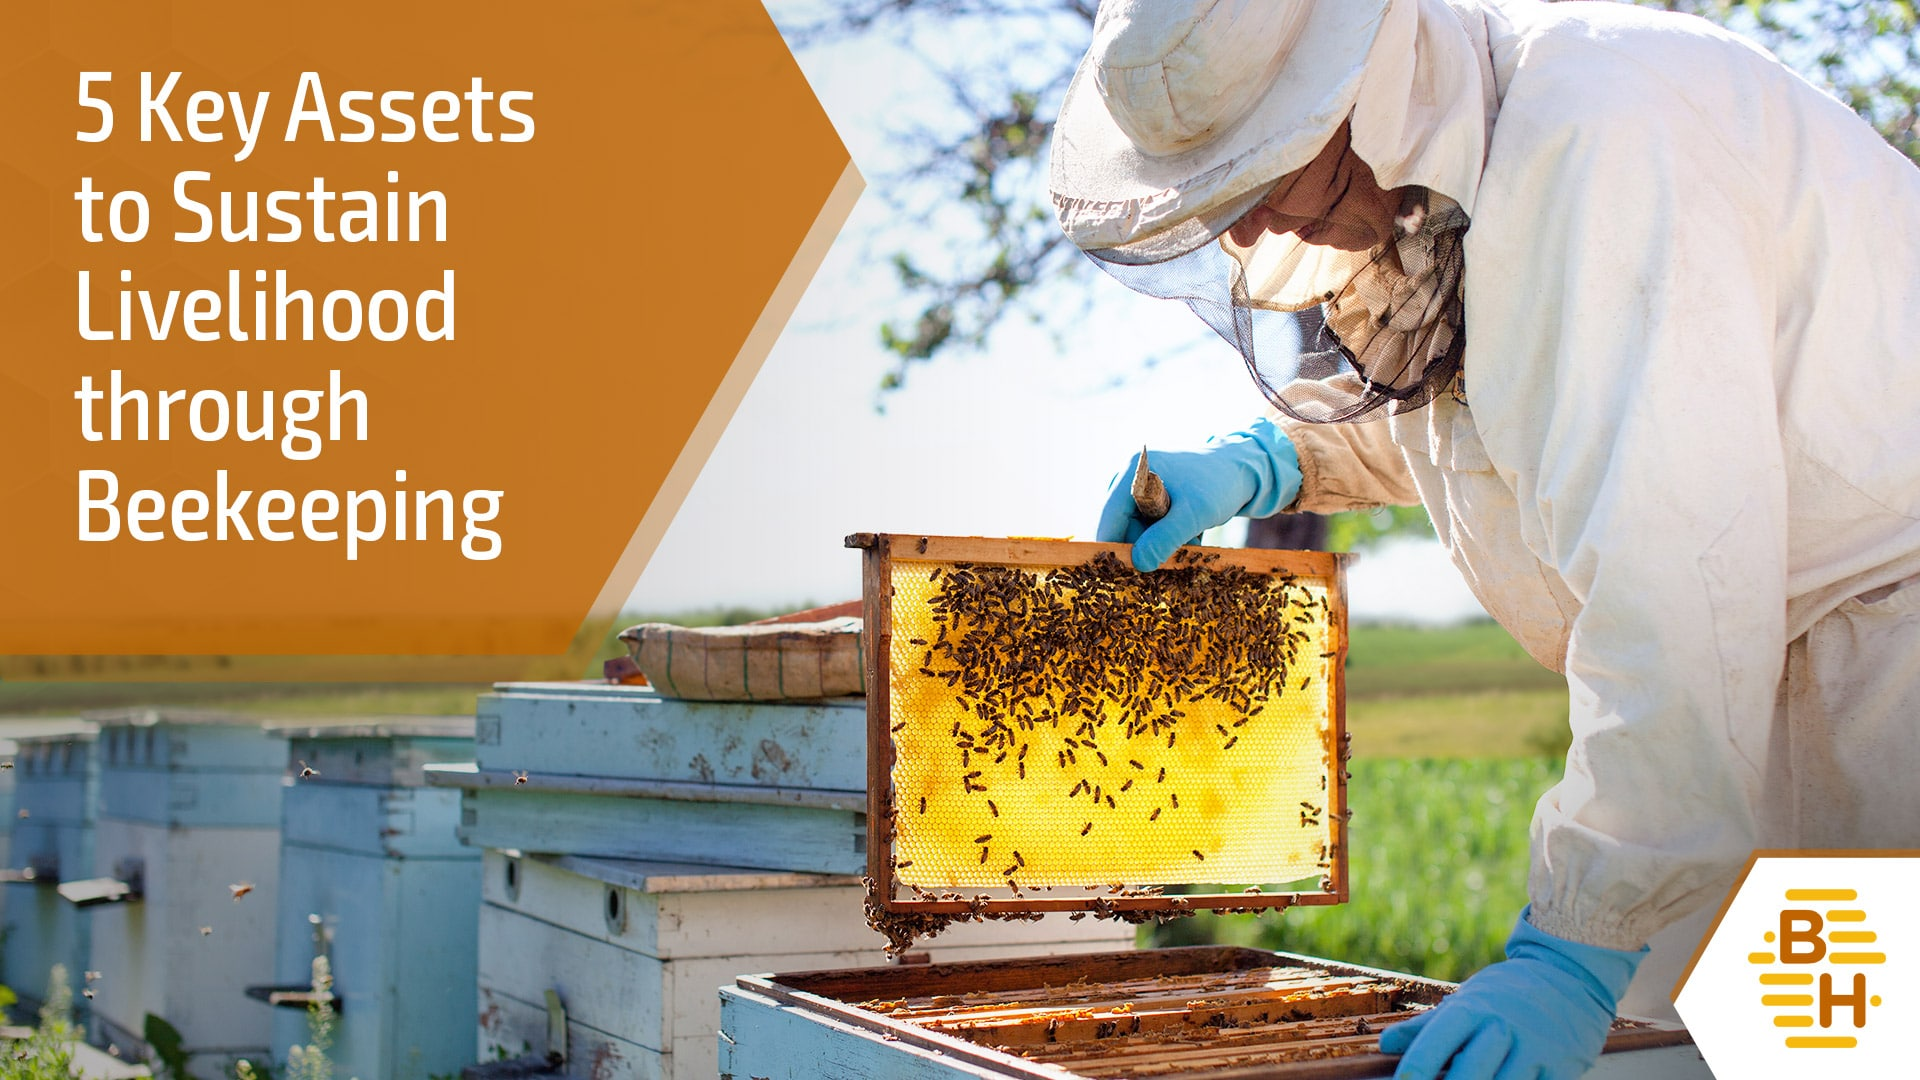 Blog 7 - 5 Key Assets to Sustain Livelihood through Beekeeping